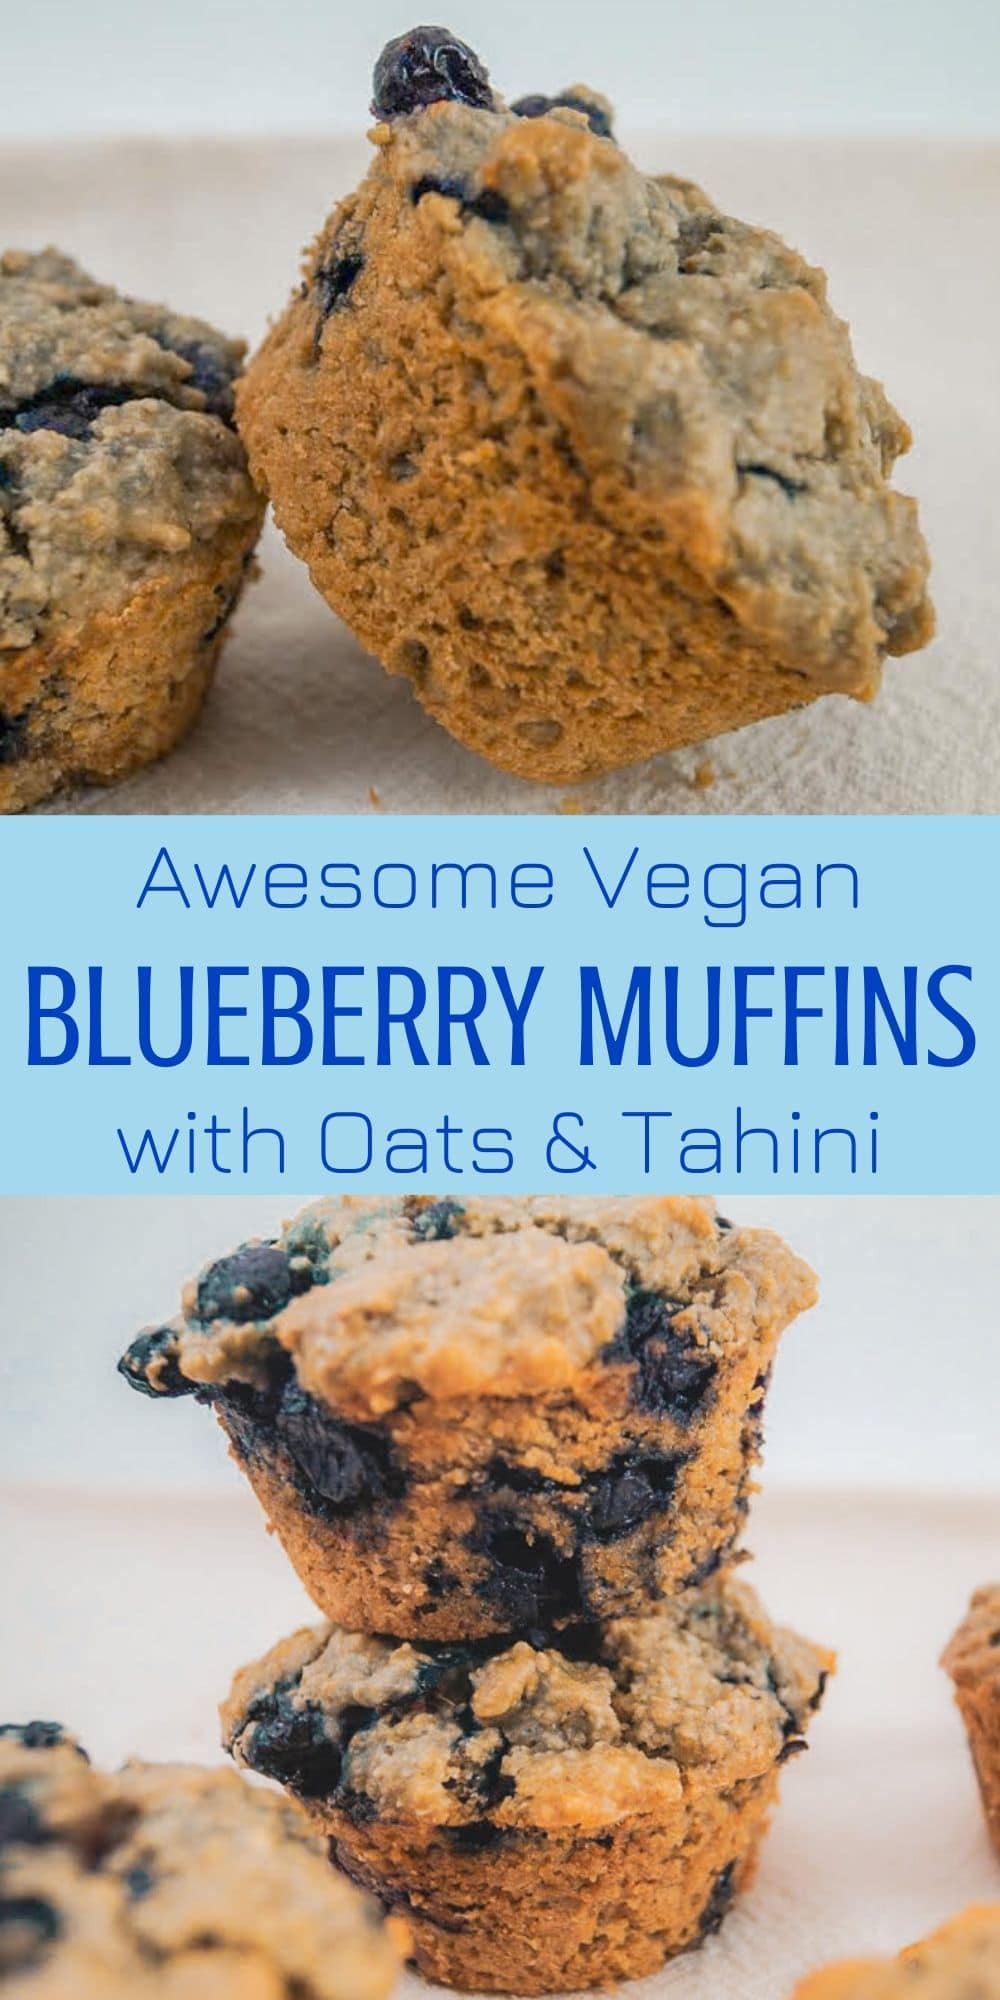 Awesome Vegan Blueberry Muffins with Oats & Tahini